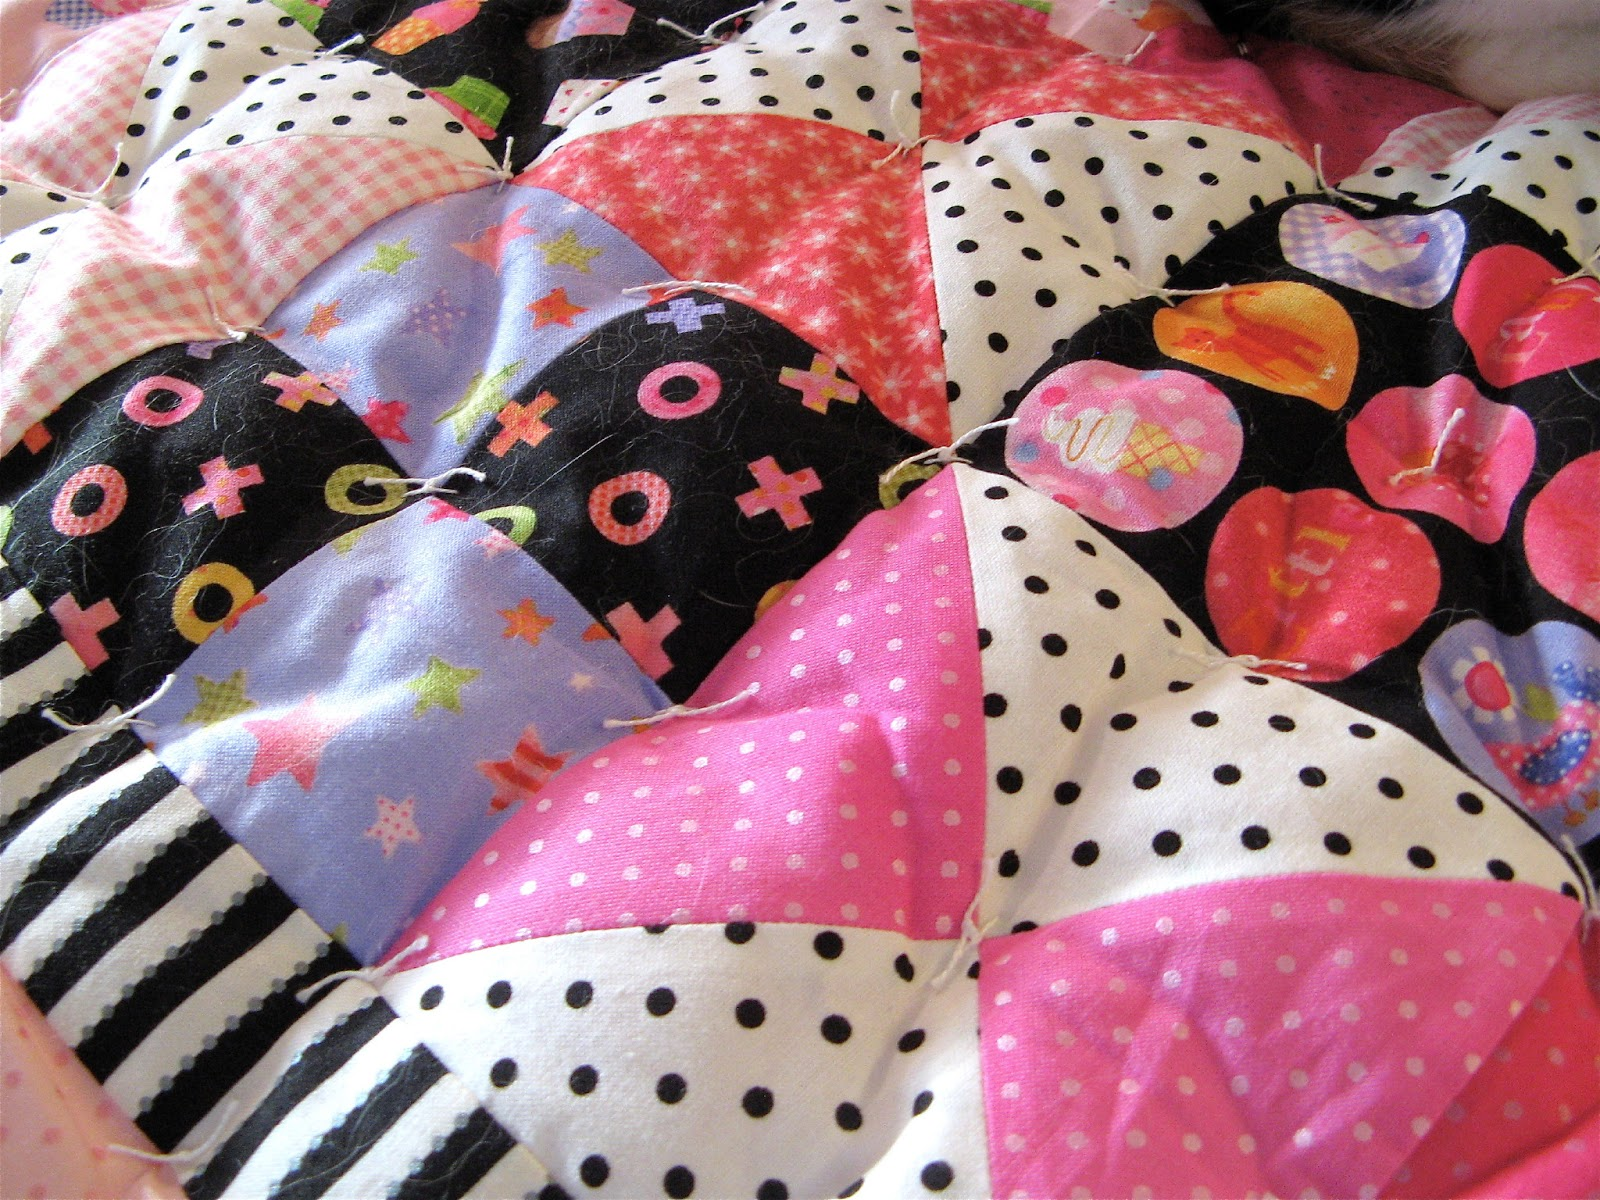 Sew Fabulous Quilt Shop: Tutorial - How To Hand Tie A Quilt : knotting quilts - Adamdwight.com